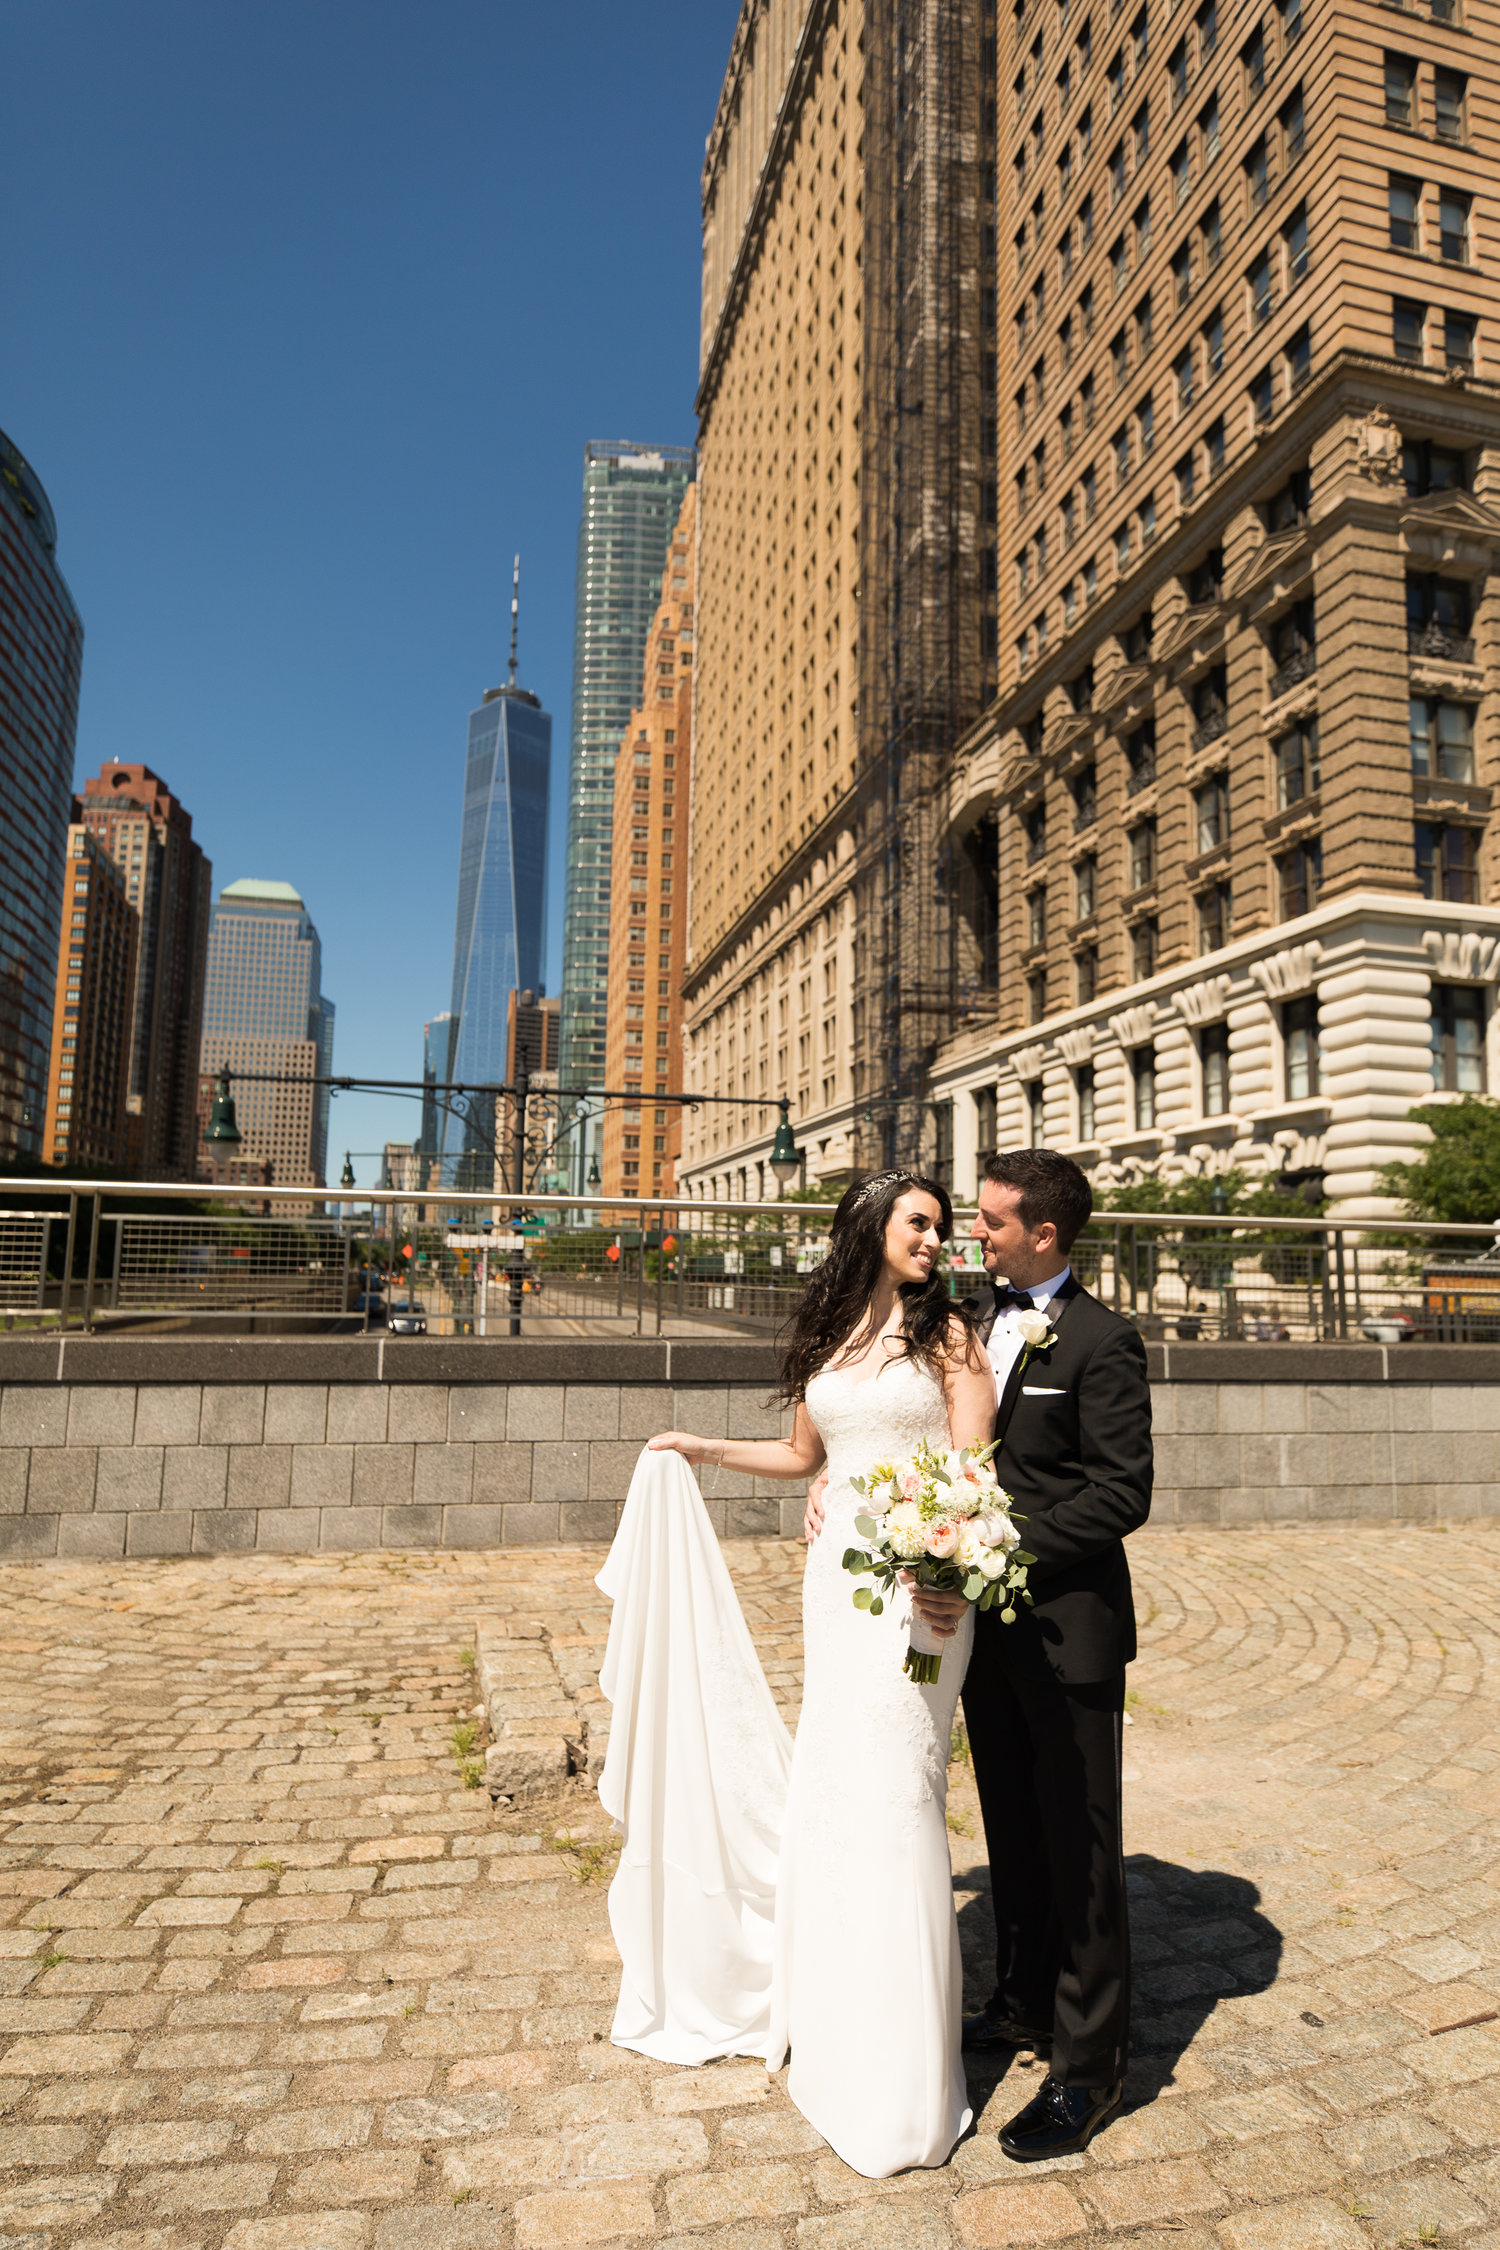 Rachel & Ben\'s Wedding at The Battery Gardens, NYC — RichardBFlores ...